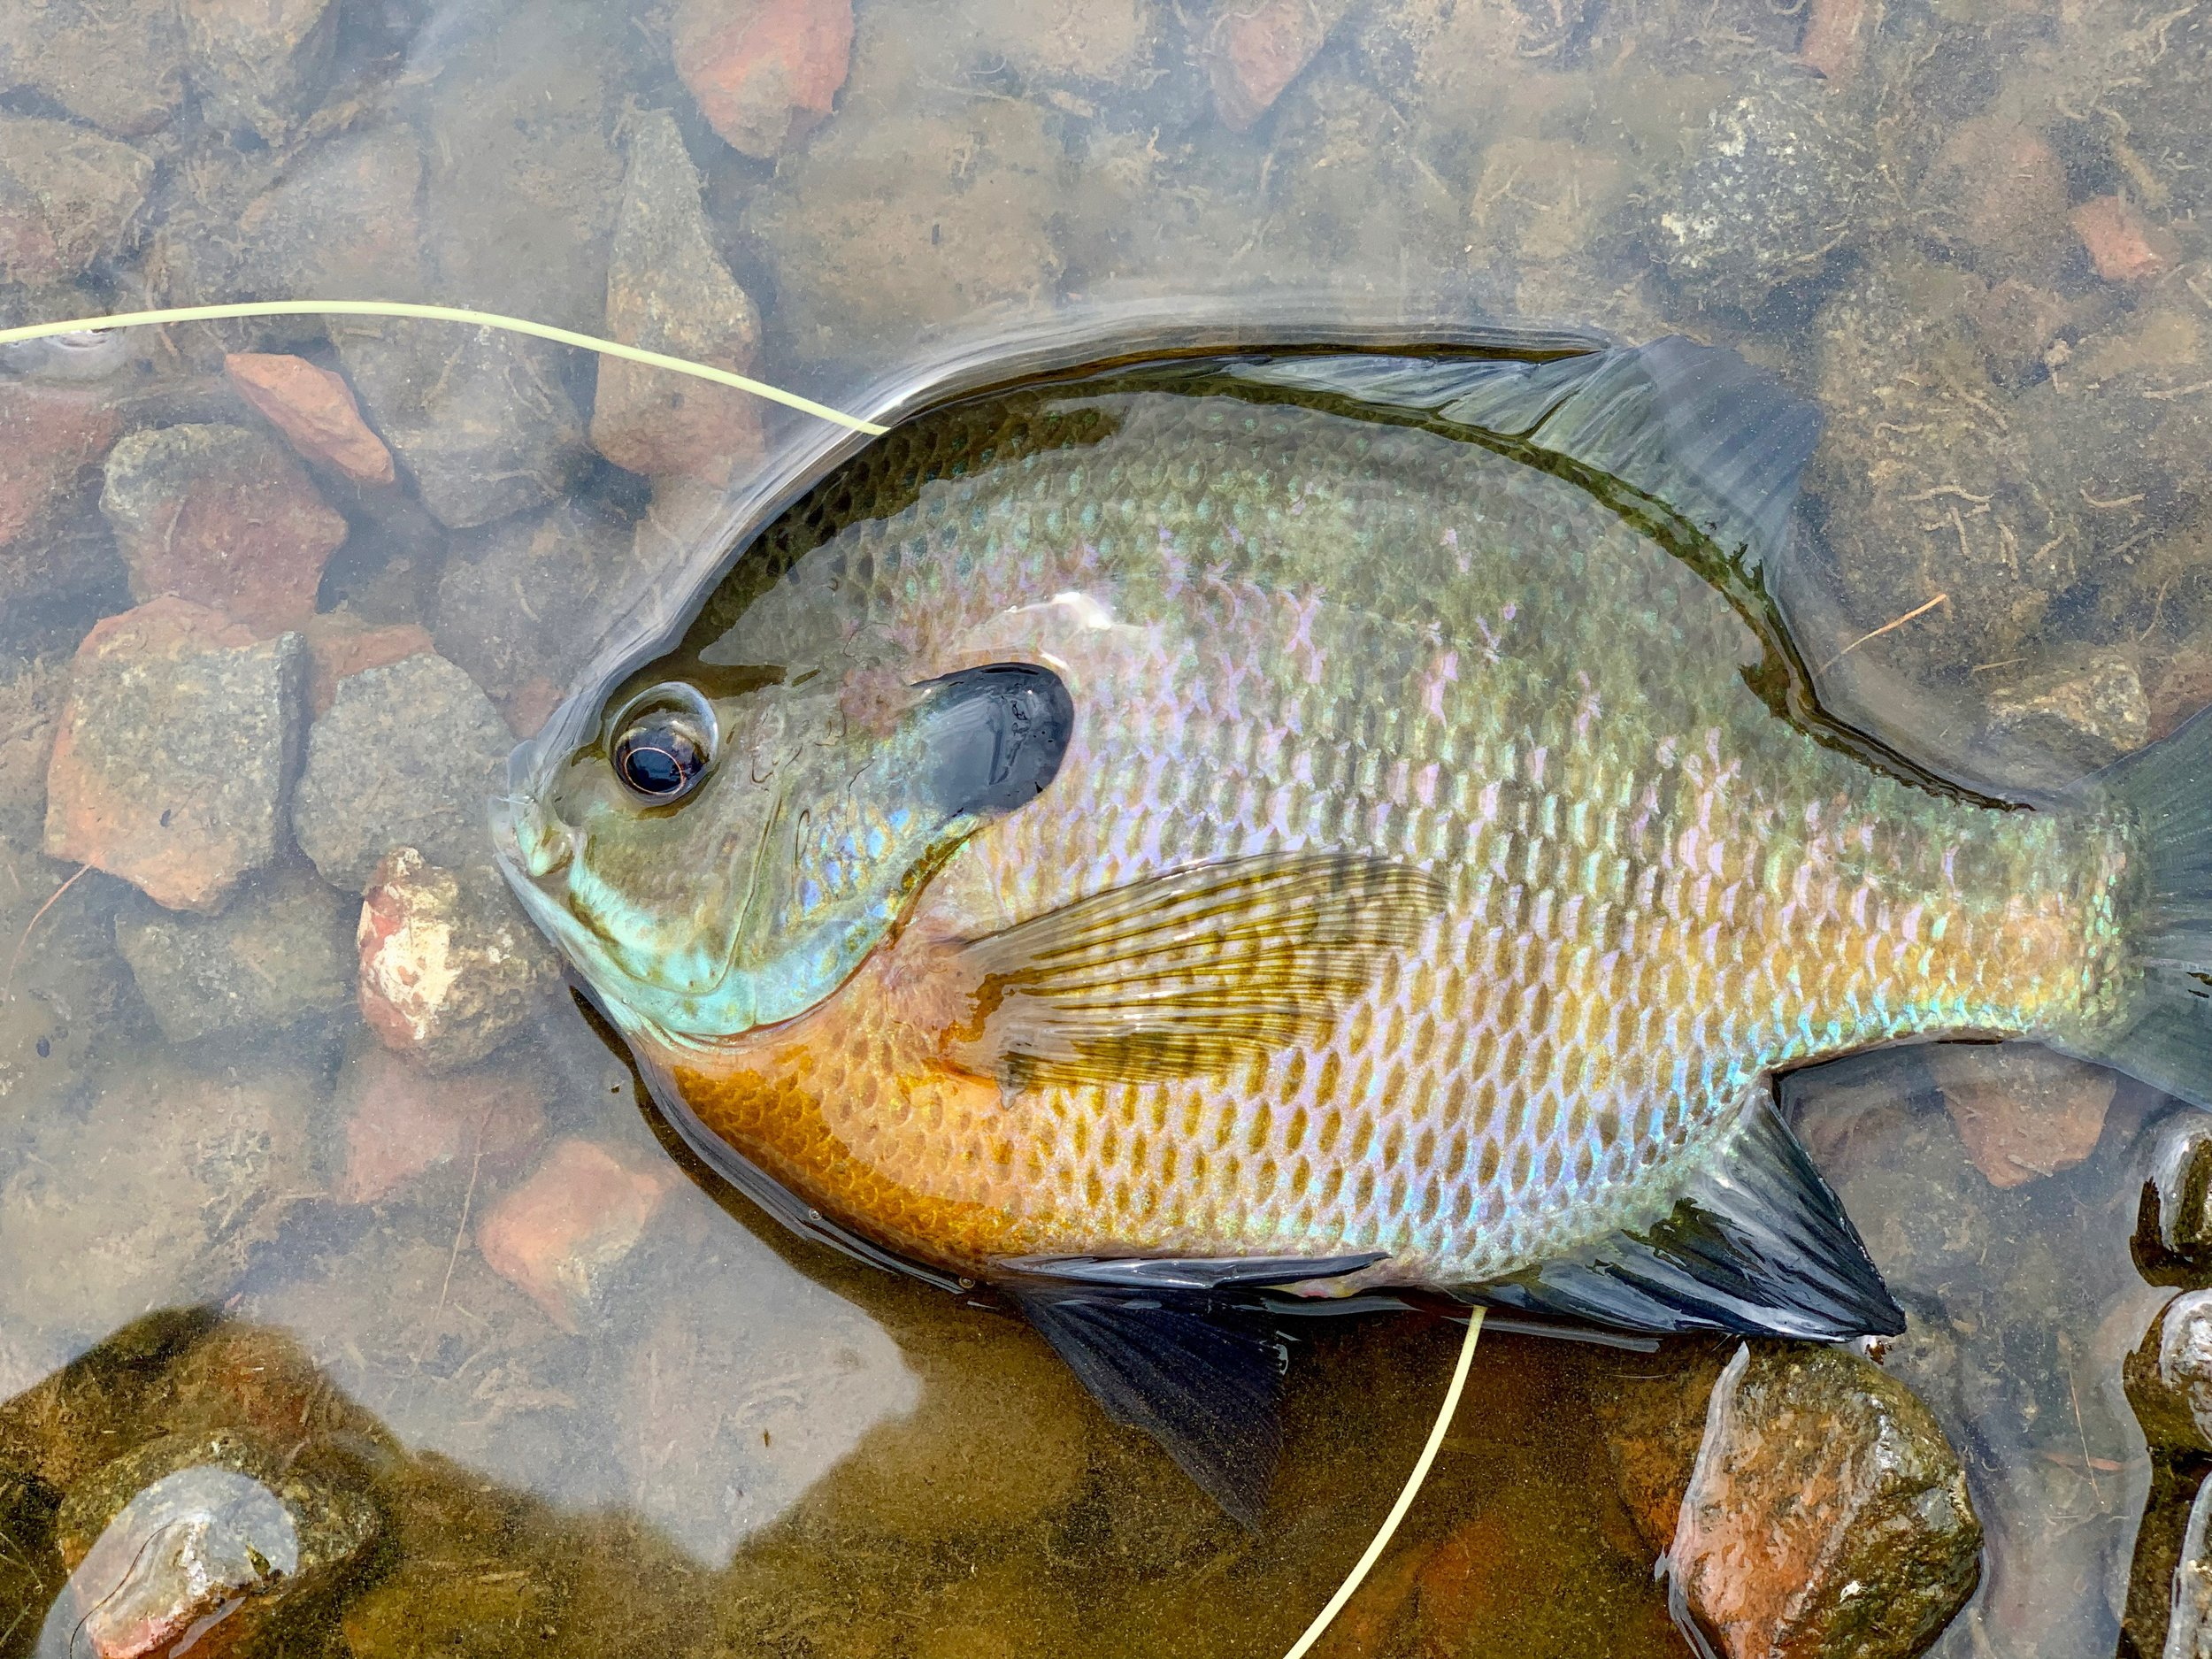 Though small panfish are often easy to catch, larger specimens like this fine bluegill are a different story once the spawning season is over!